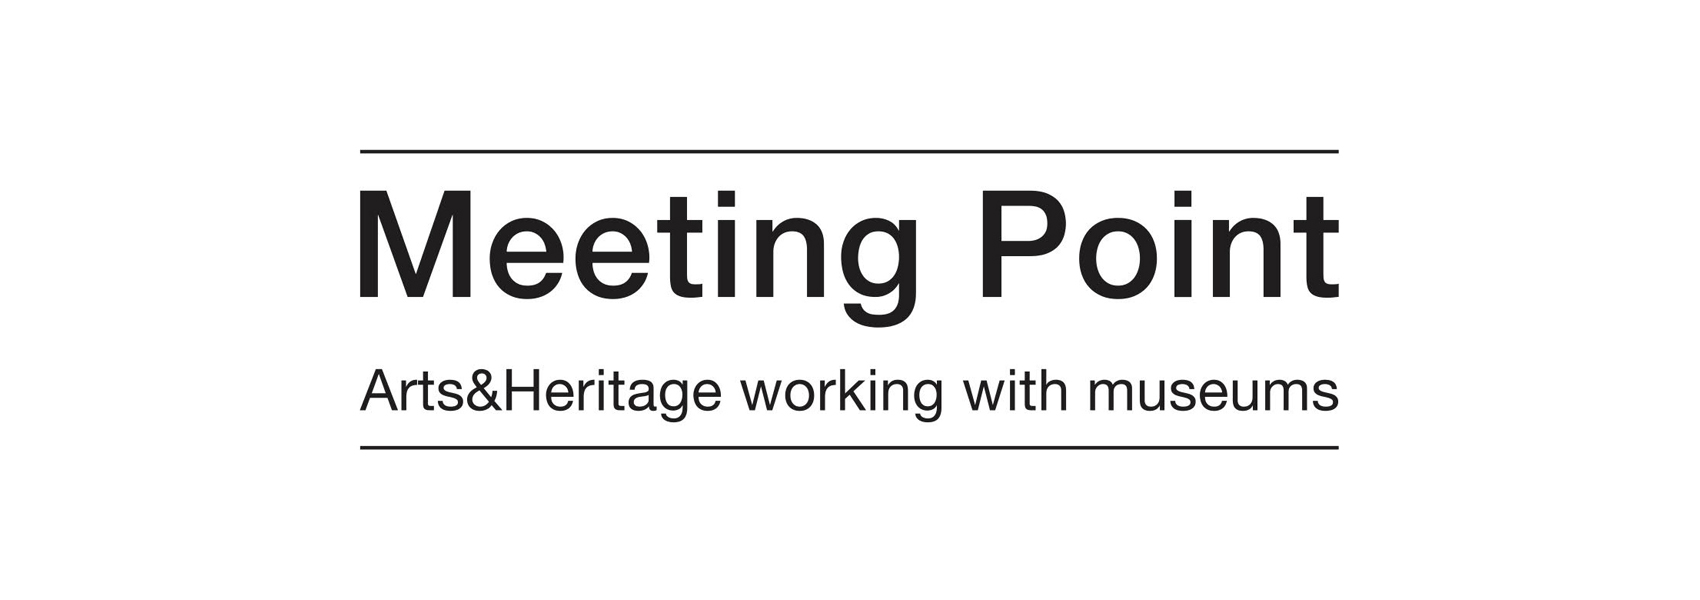 Meeting Point select the Paralympic Heritage Centre to partner with contemporary artists